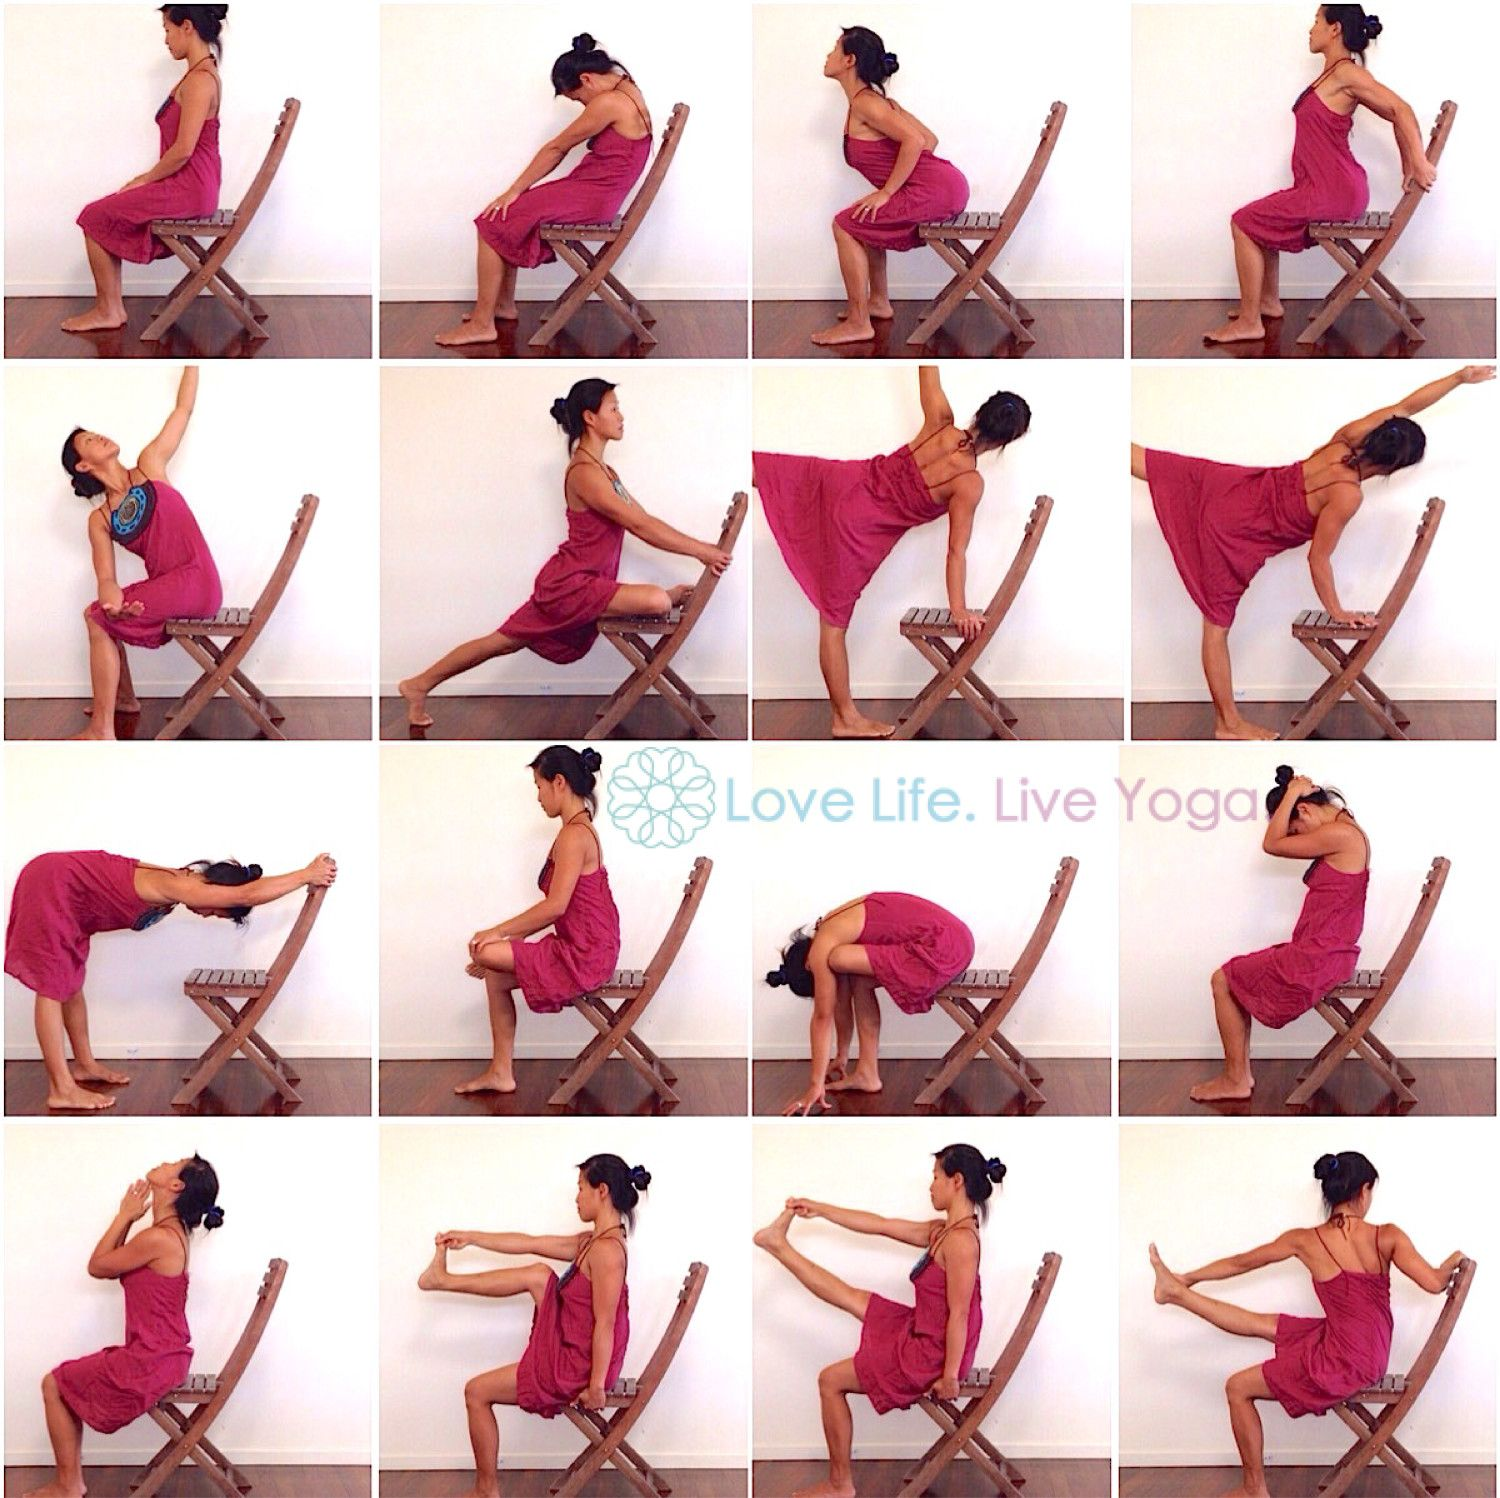 Chair yoga elderly - Https Www Google Nl Search Q Chair Yoga